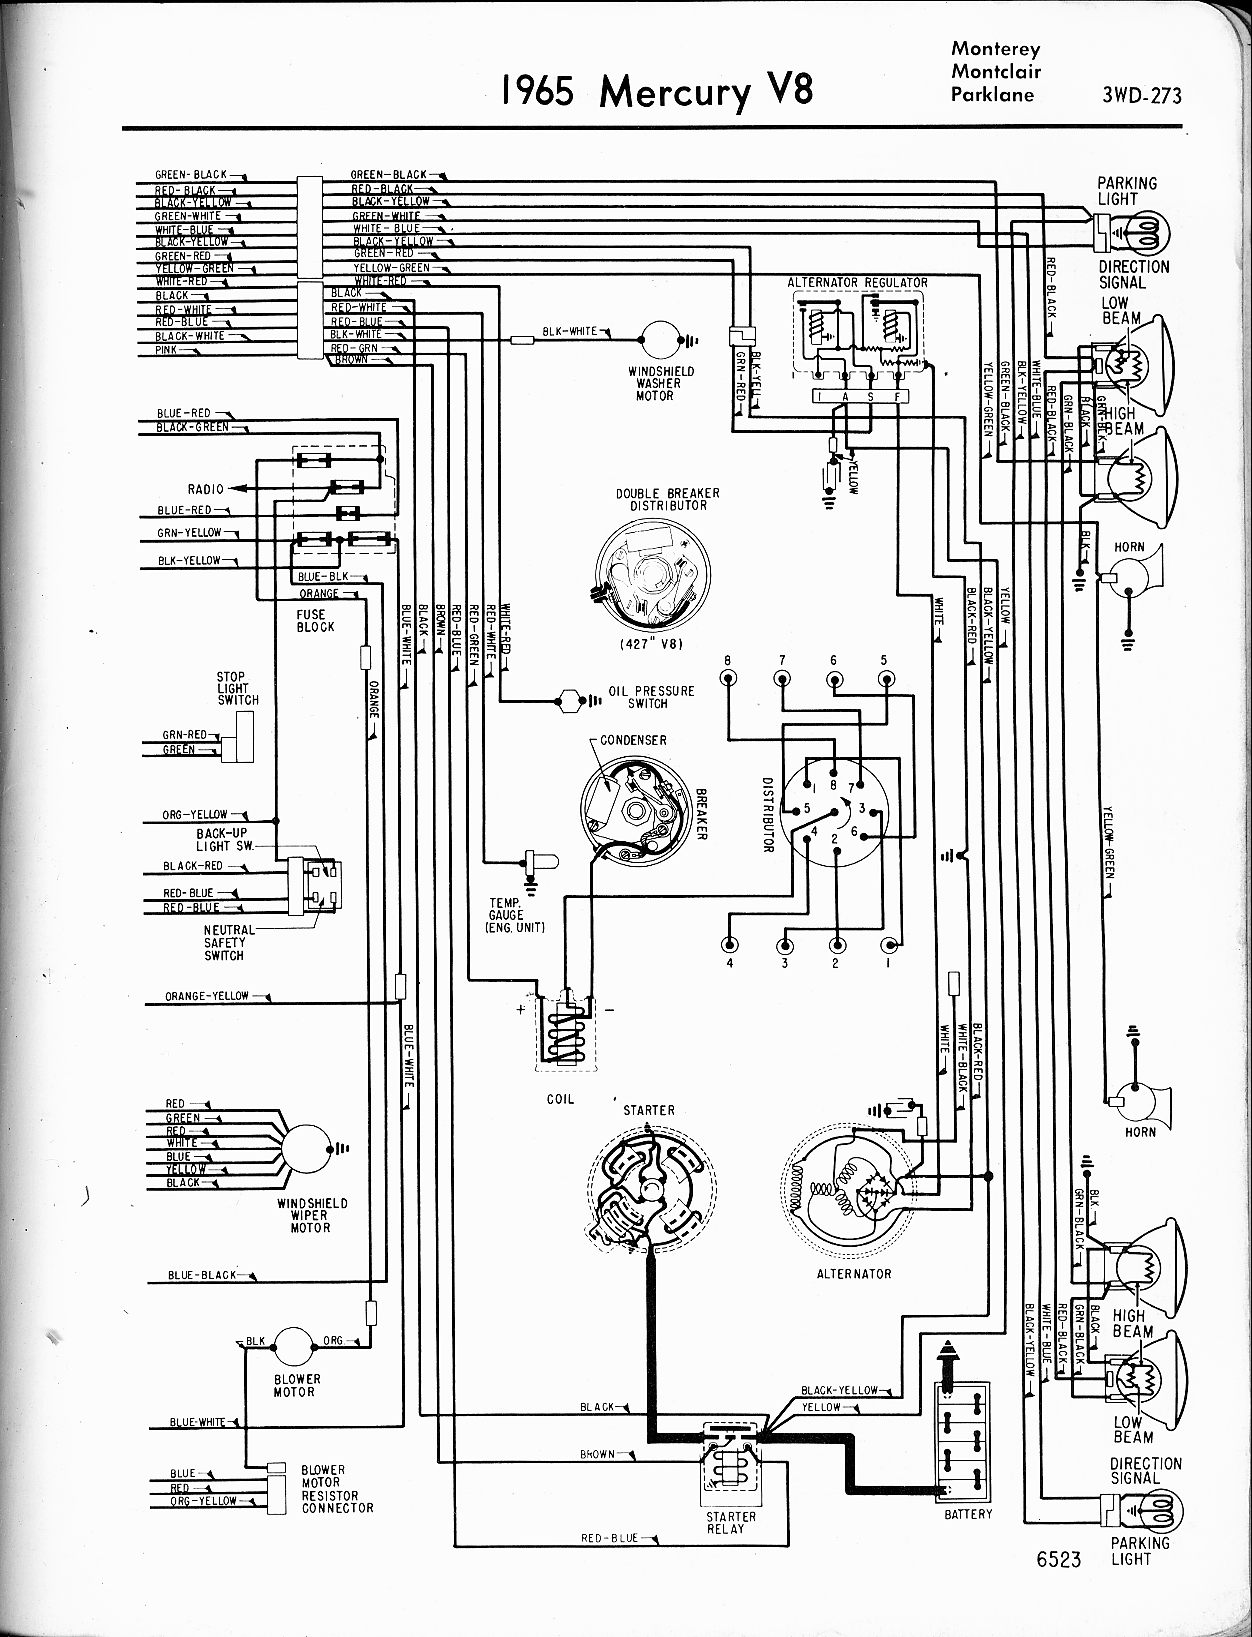 MWire5765 273 mercury wiring diagrams the old car manual project mercury 850 wiring diagram at honlapkeszites.co